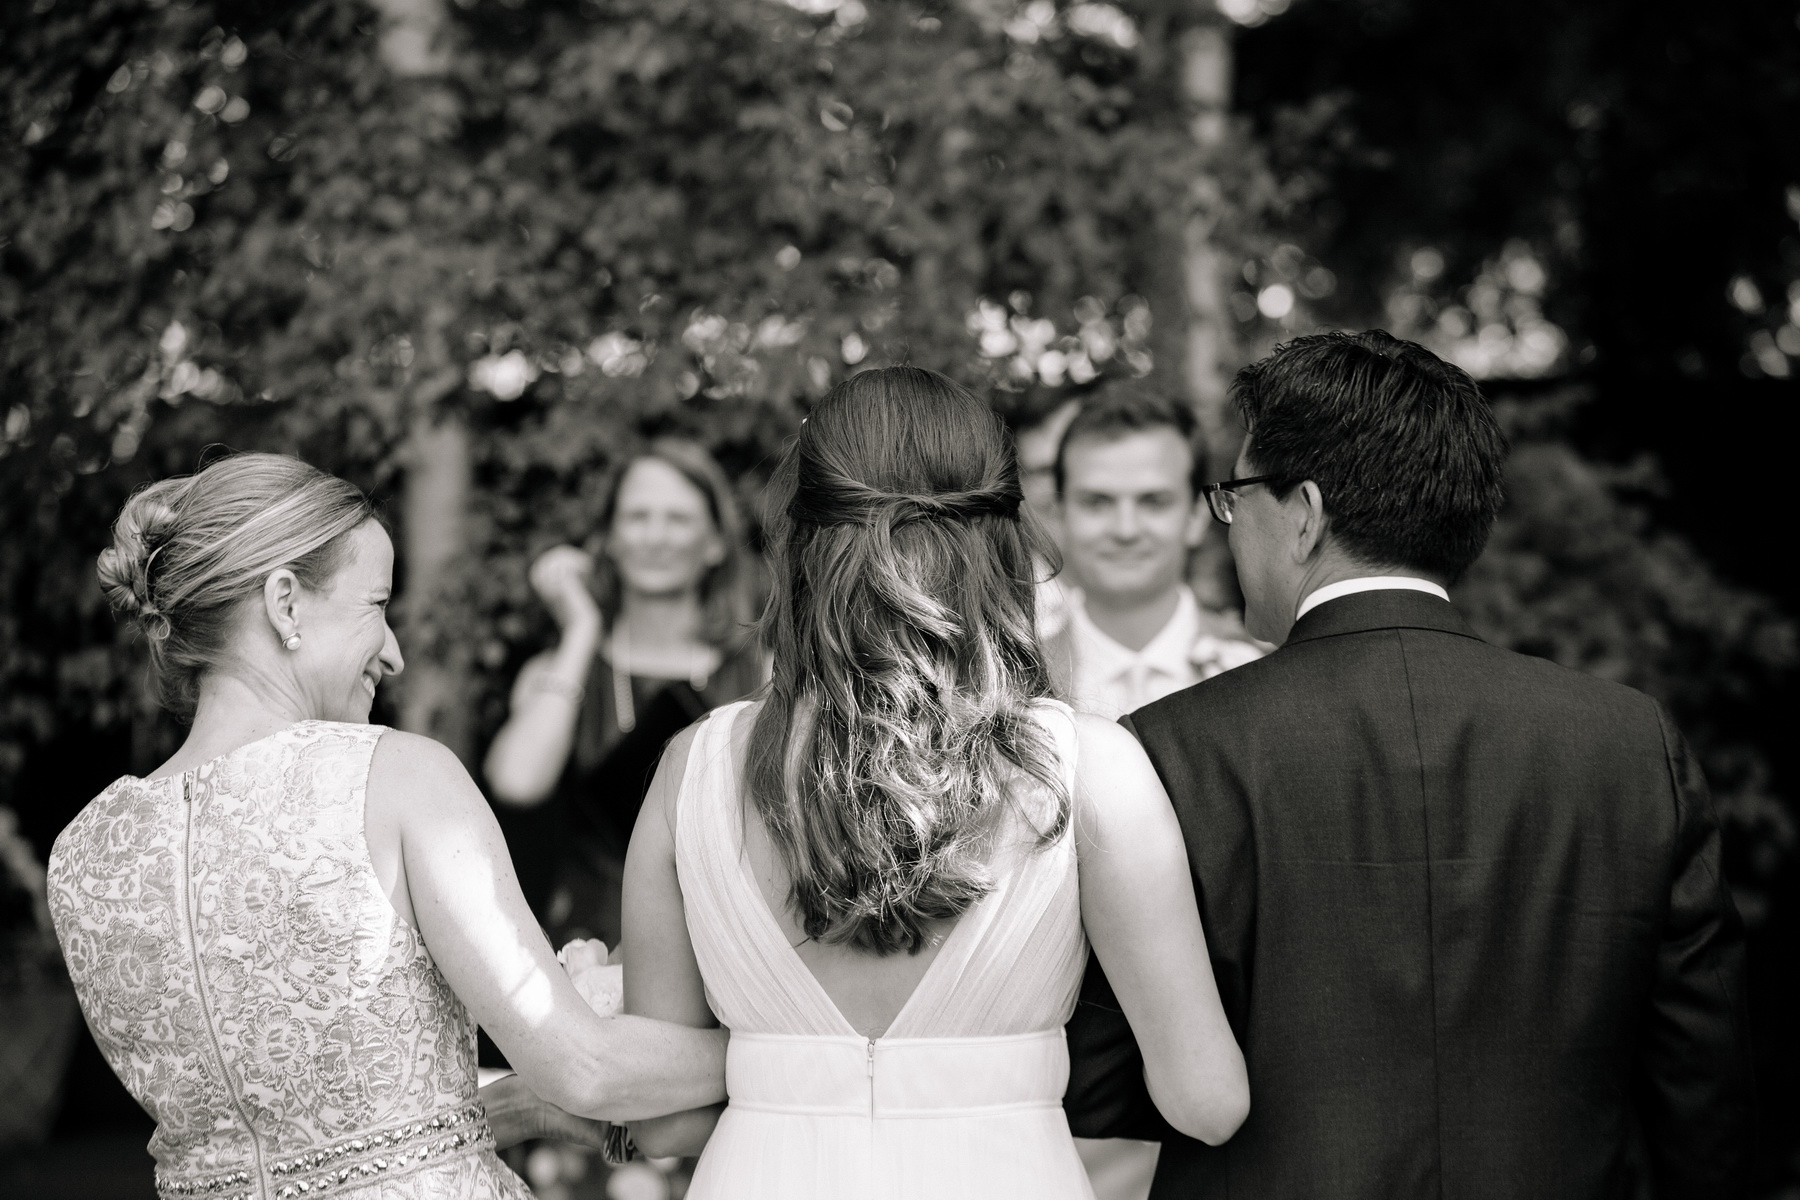 bride sees groom for the first time walking down the aisle at her backyard wedding